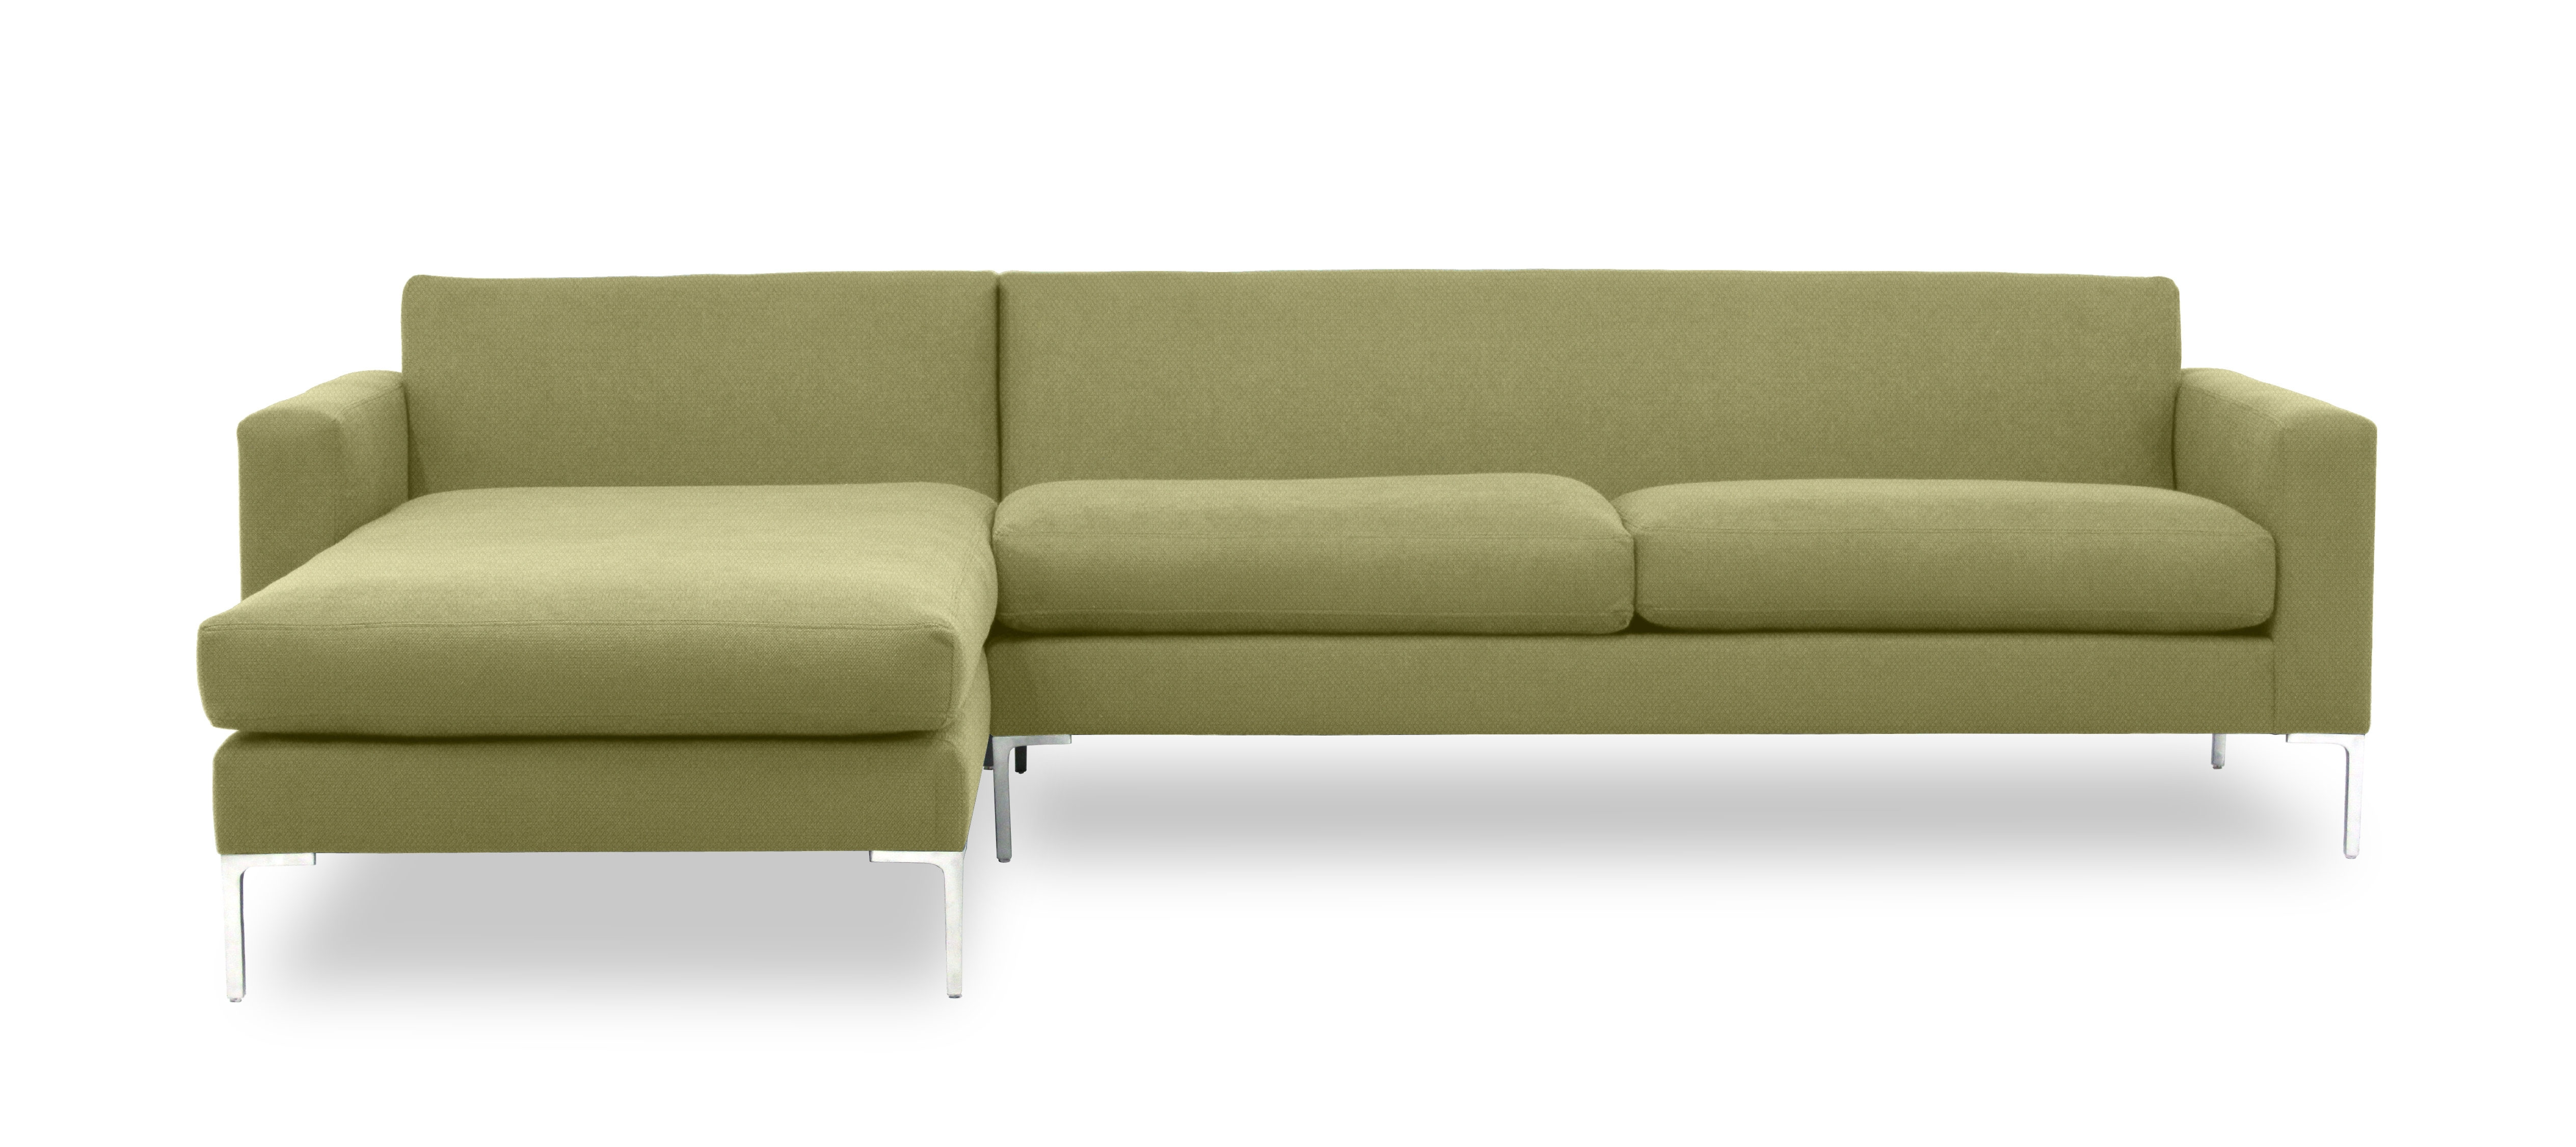 Well Known Sectional Sofas Charlotte Nc – Hotelsbacau Intended For Sectional Sofas At Charlotte Nc (View 20 of 20)